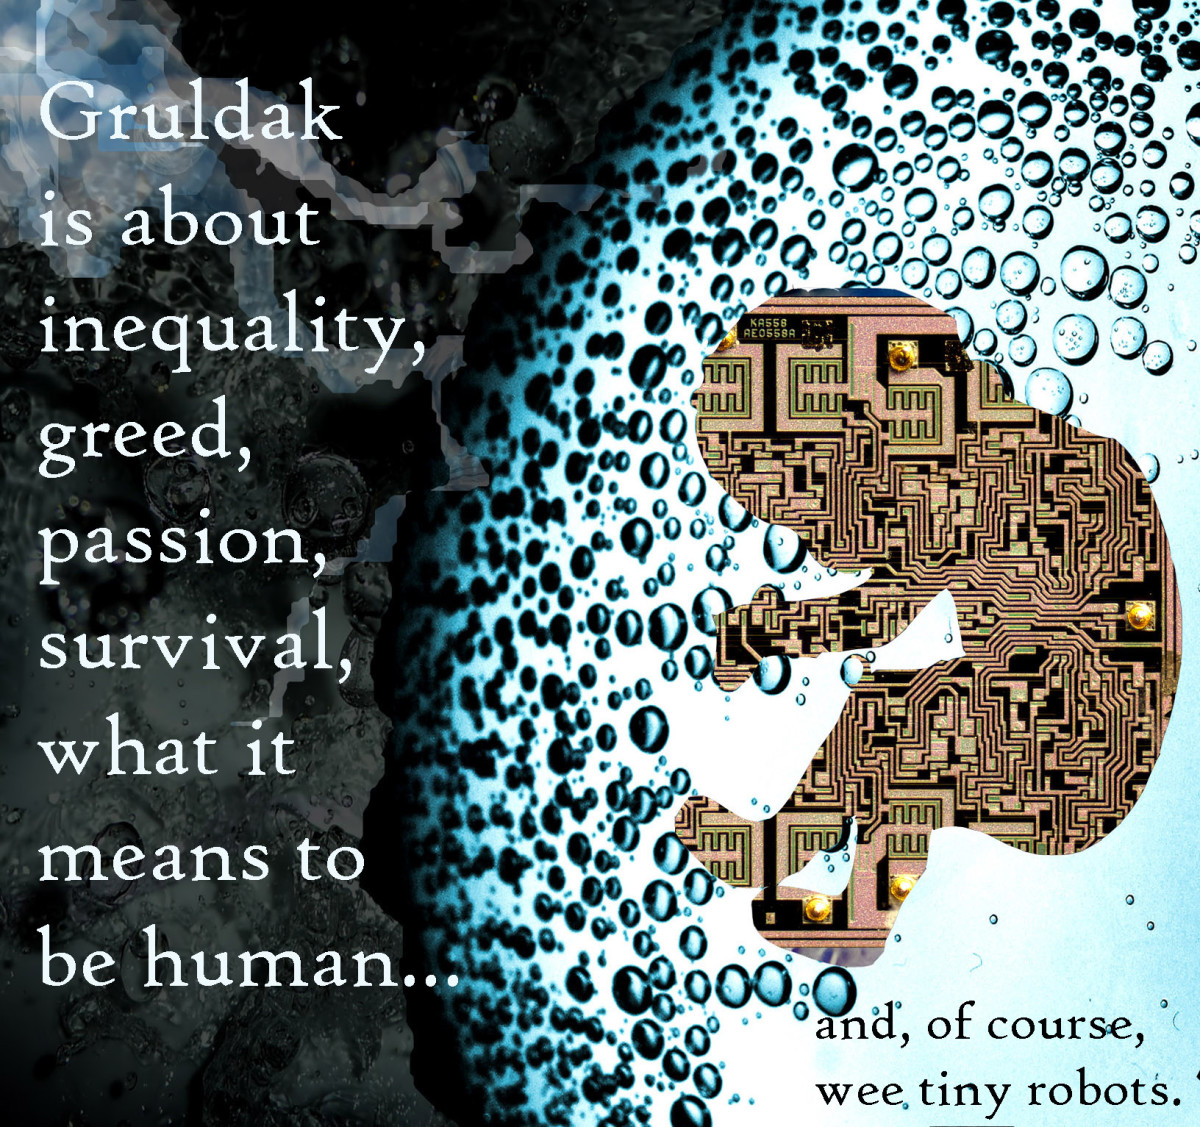 Gift of the Gruldak, a Serialized Science Fiction Novel by Kylyssa Shay